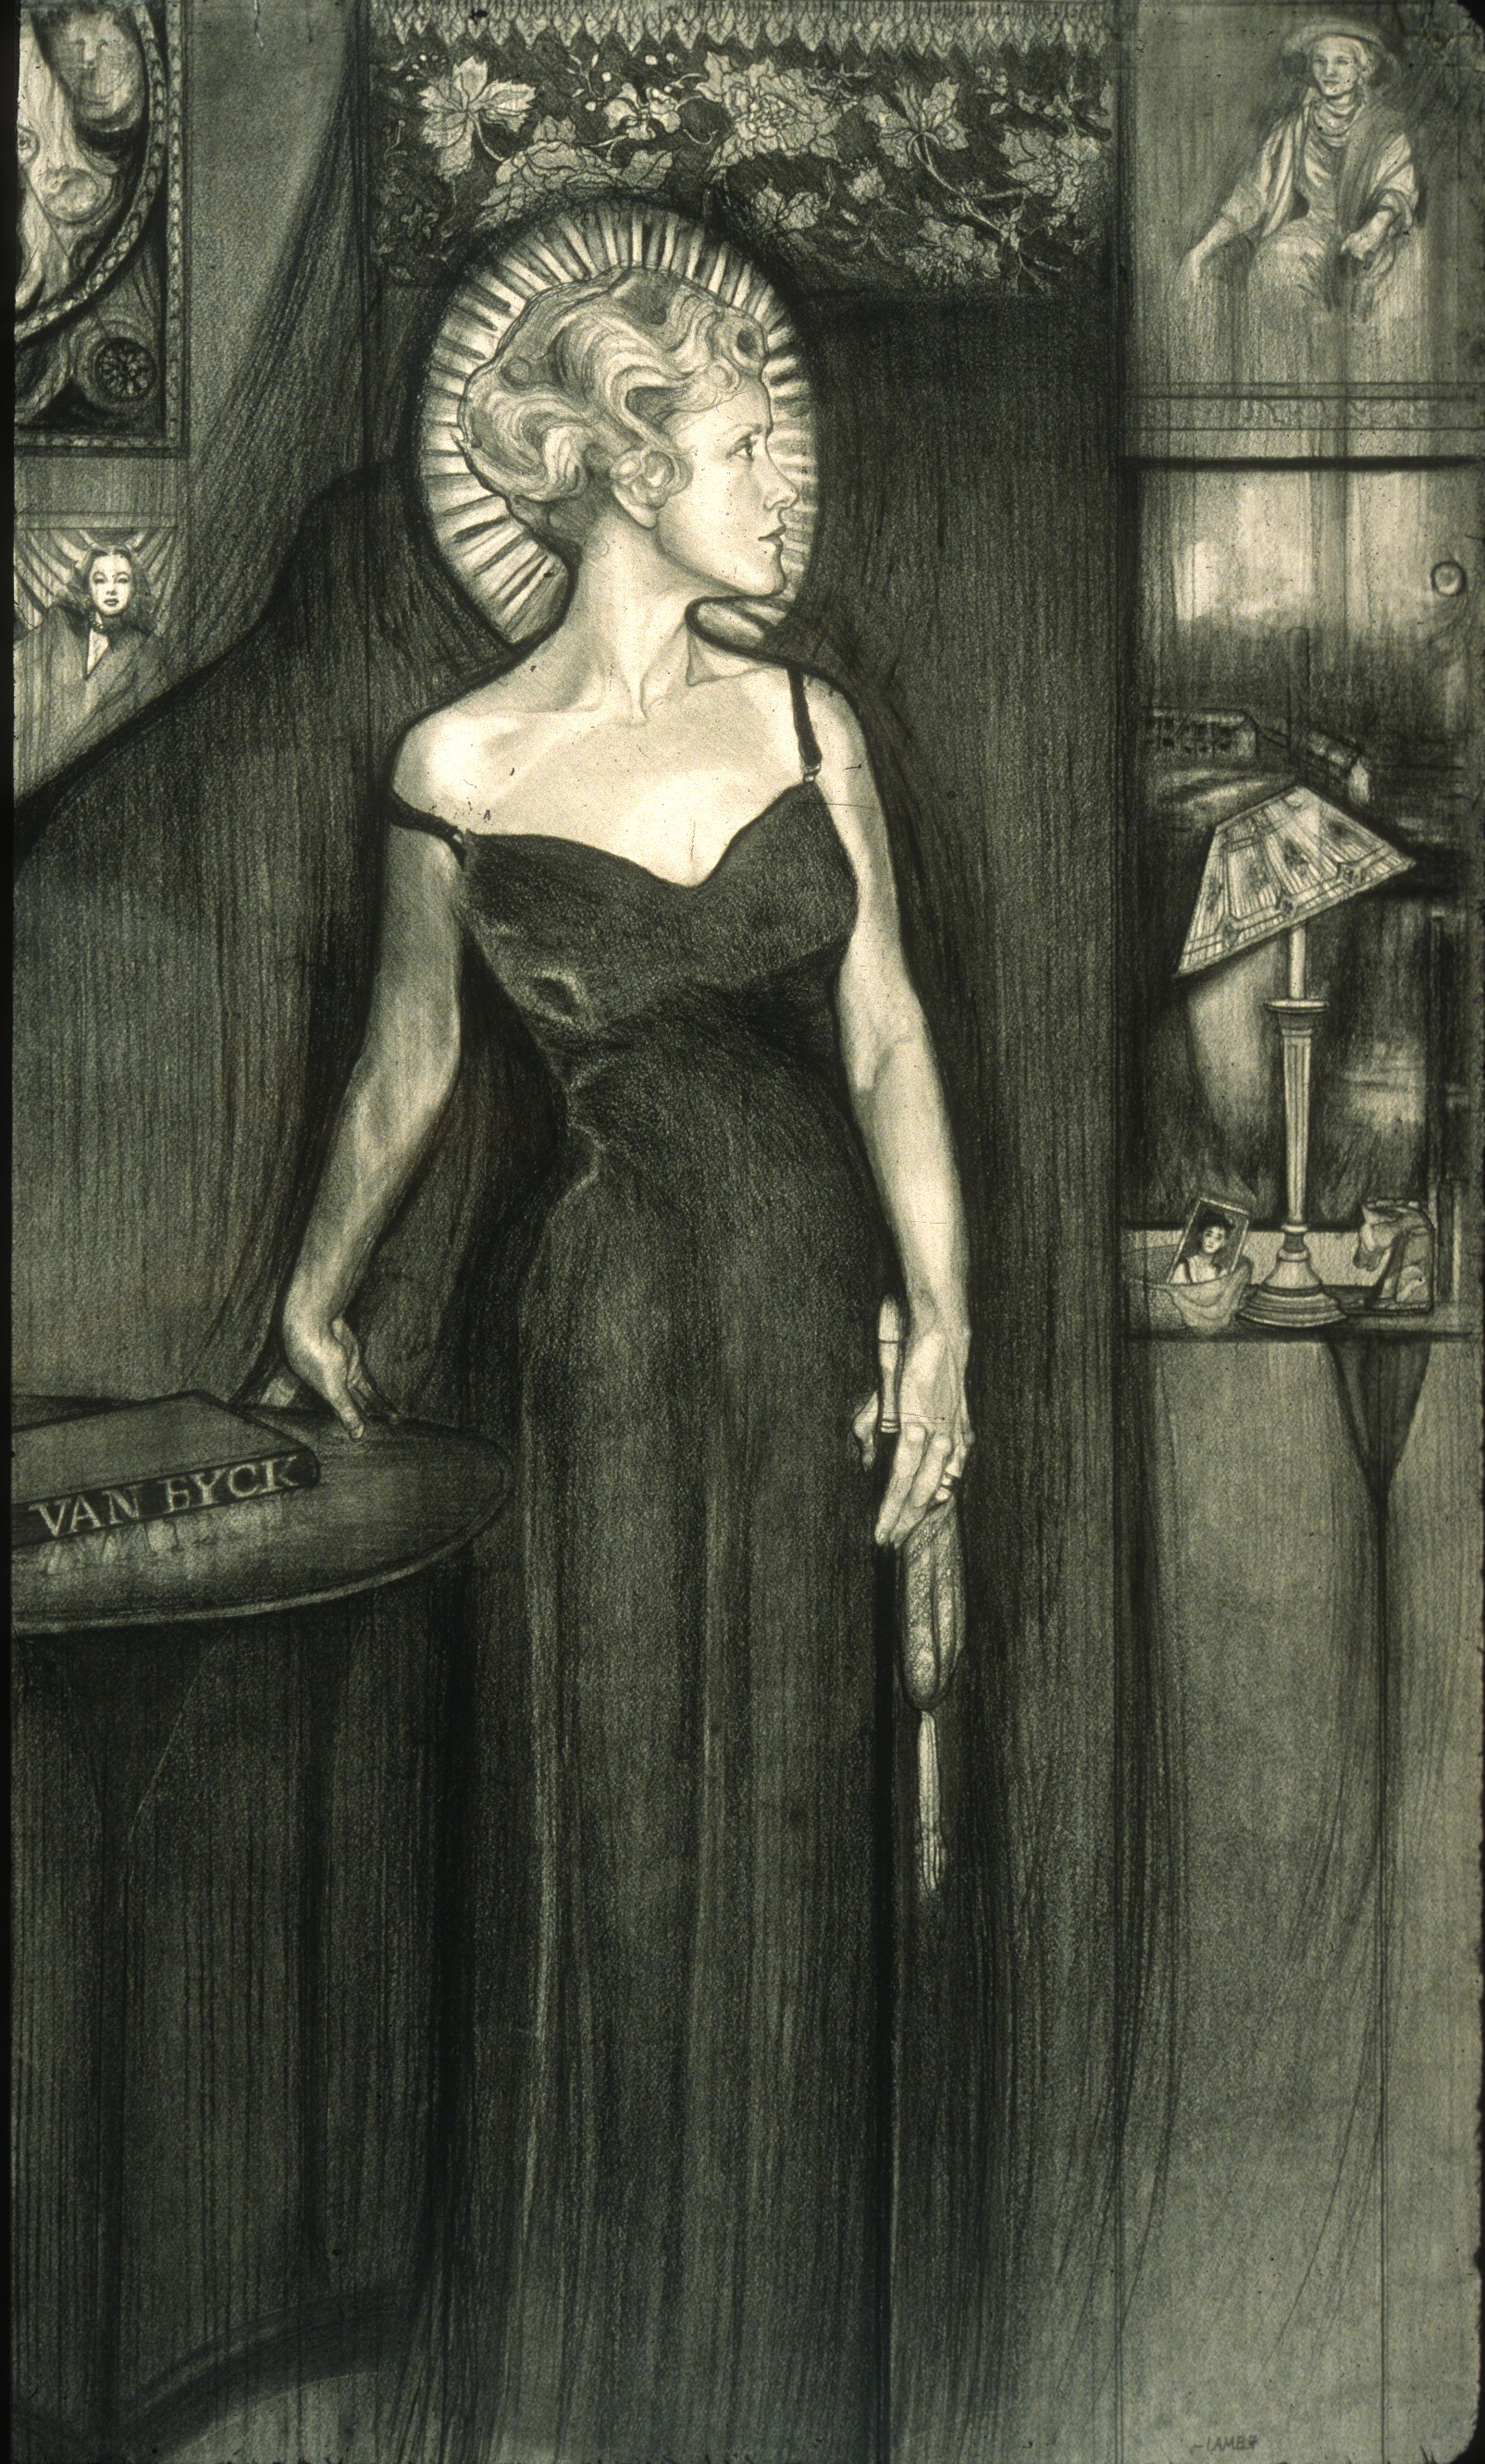 """Lou Ann Burkhardt  Lady Jane's Destiny,   1998 Graphite on paper 24 -1/2"""" x 40"""" framed $3,300 Prints on paper available in 10"""" x 16-1/2"""" and 13"""" x 19"""""""